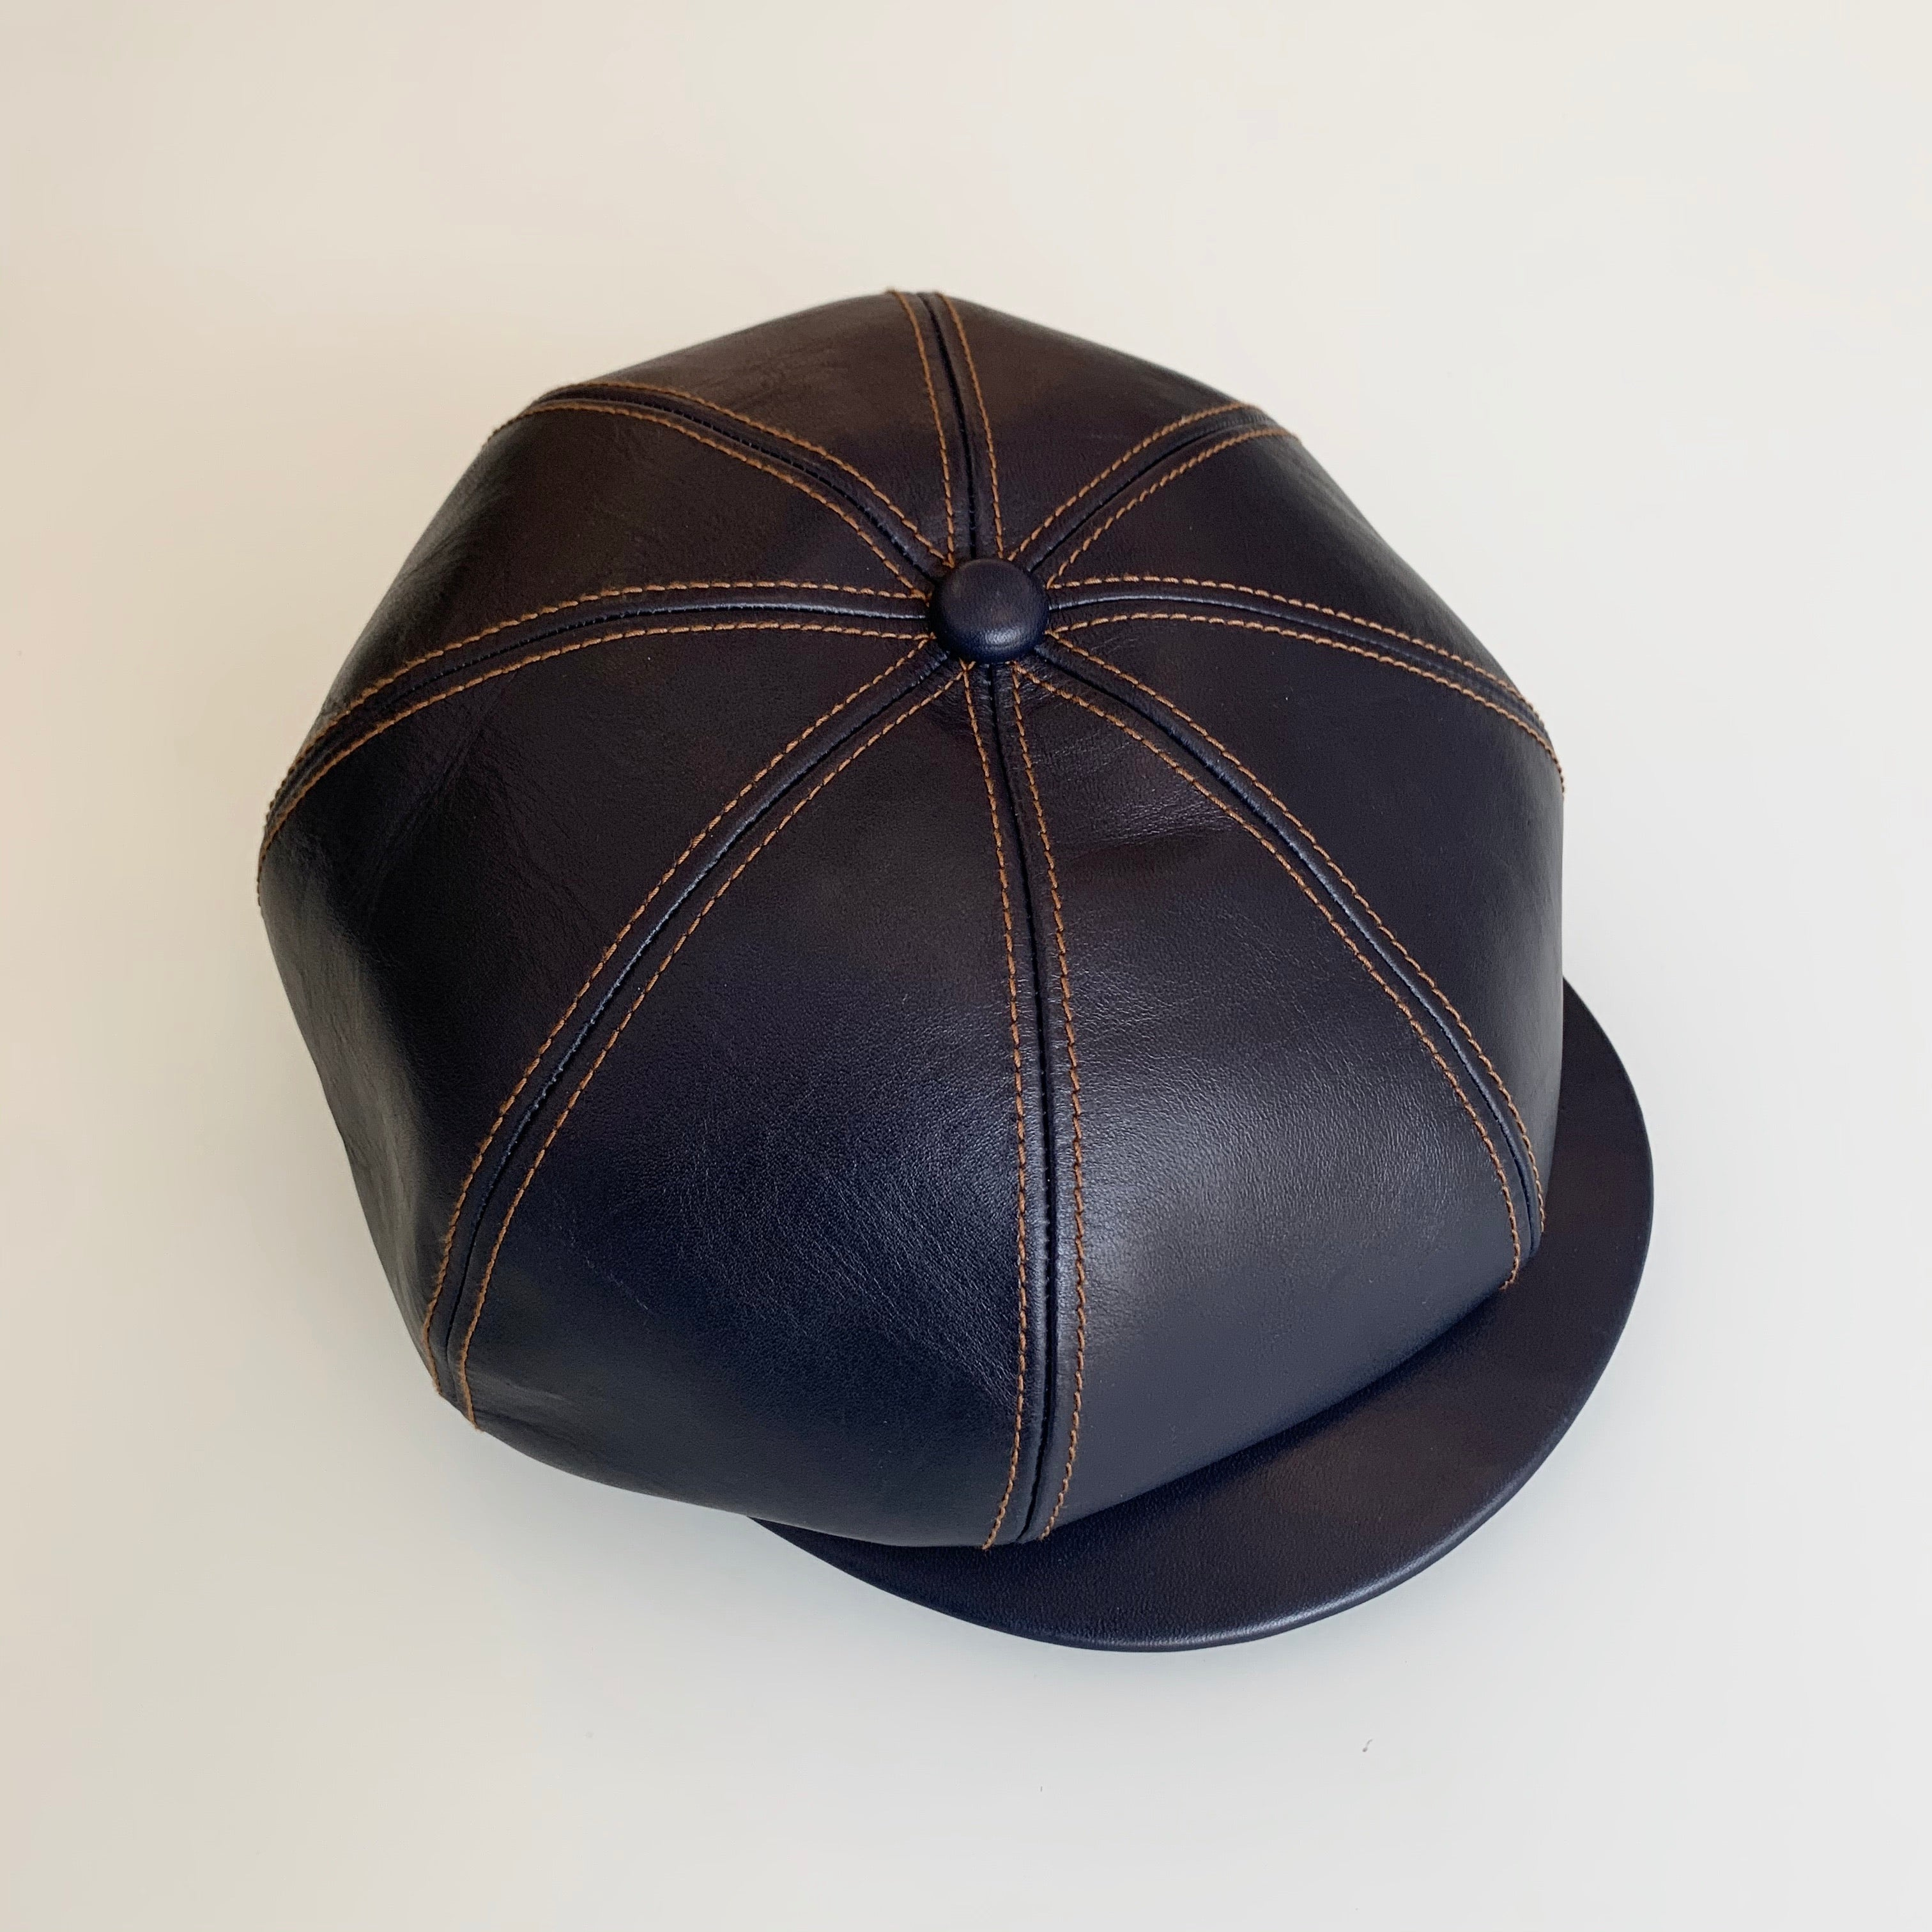 Indigo Dyed Horsehide Leather Casquette (LC-04)